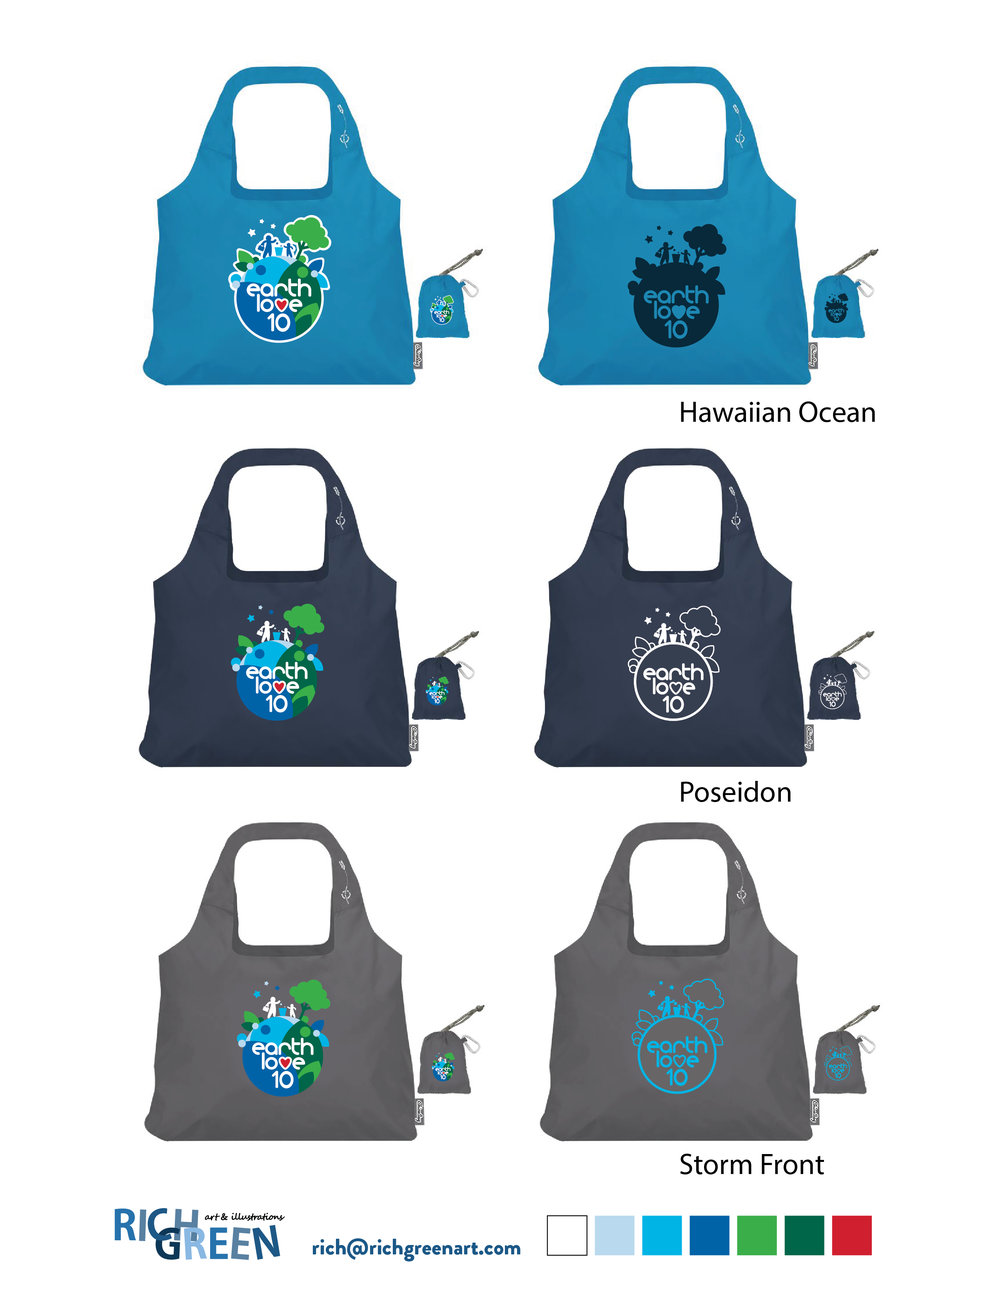 Earth Love 10 product mock ups 01_Bag Mockups.jpg